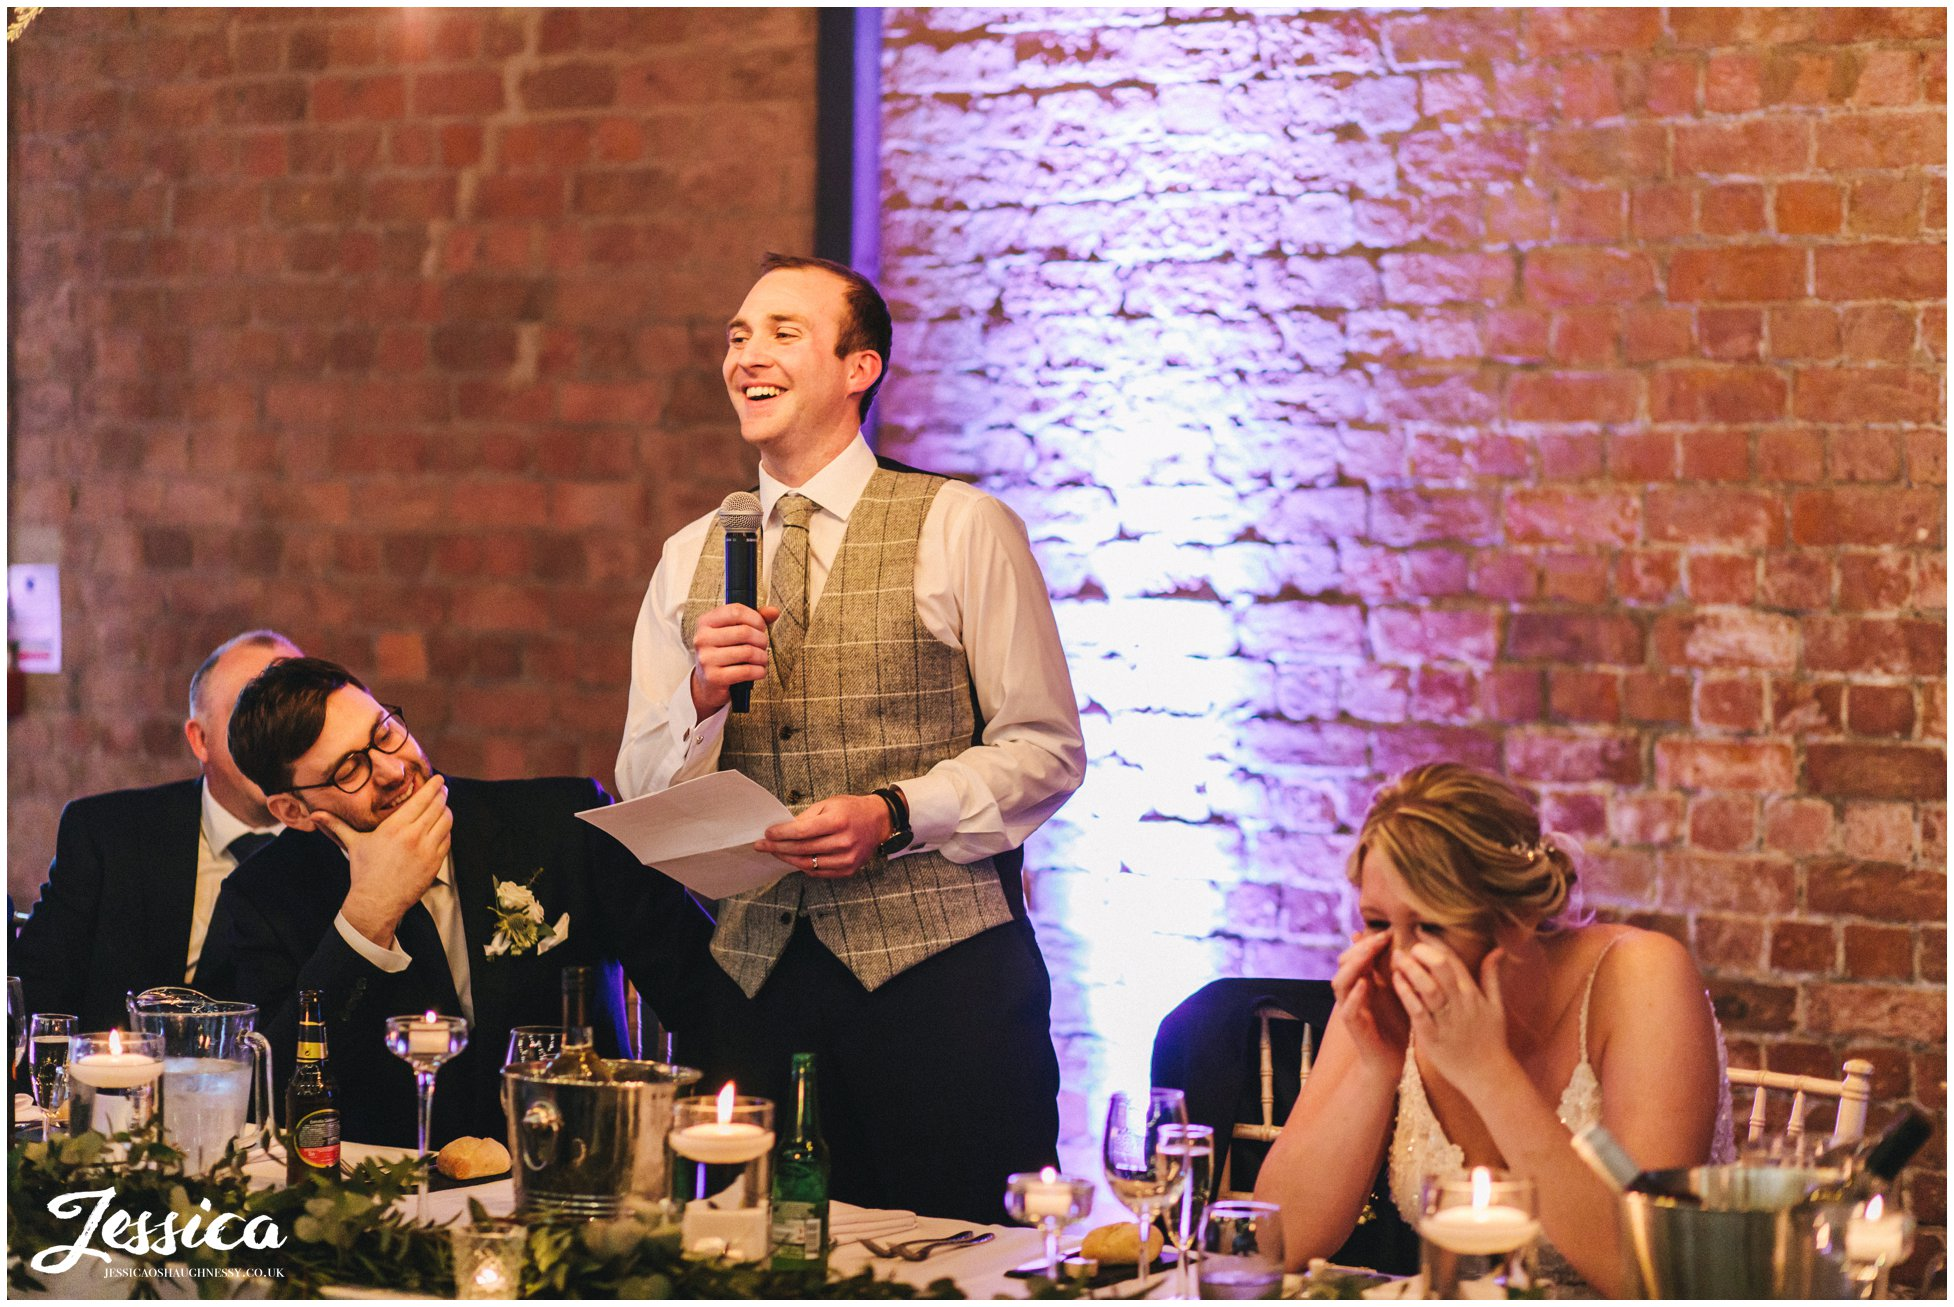 the groom stands to give his speech